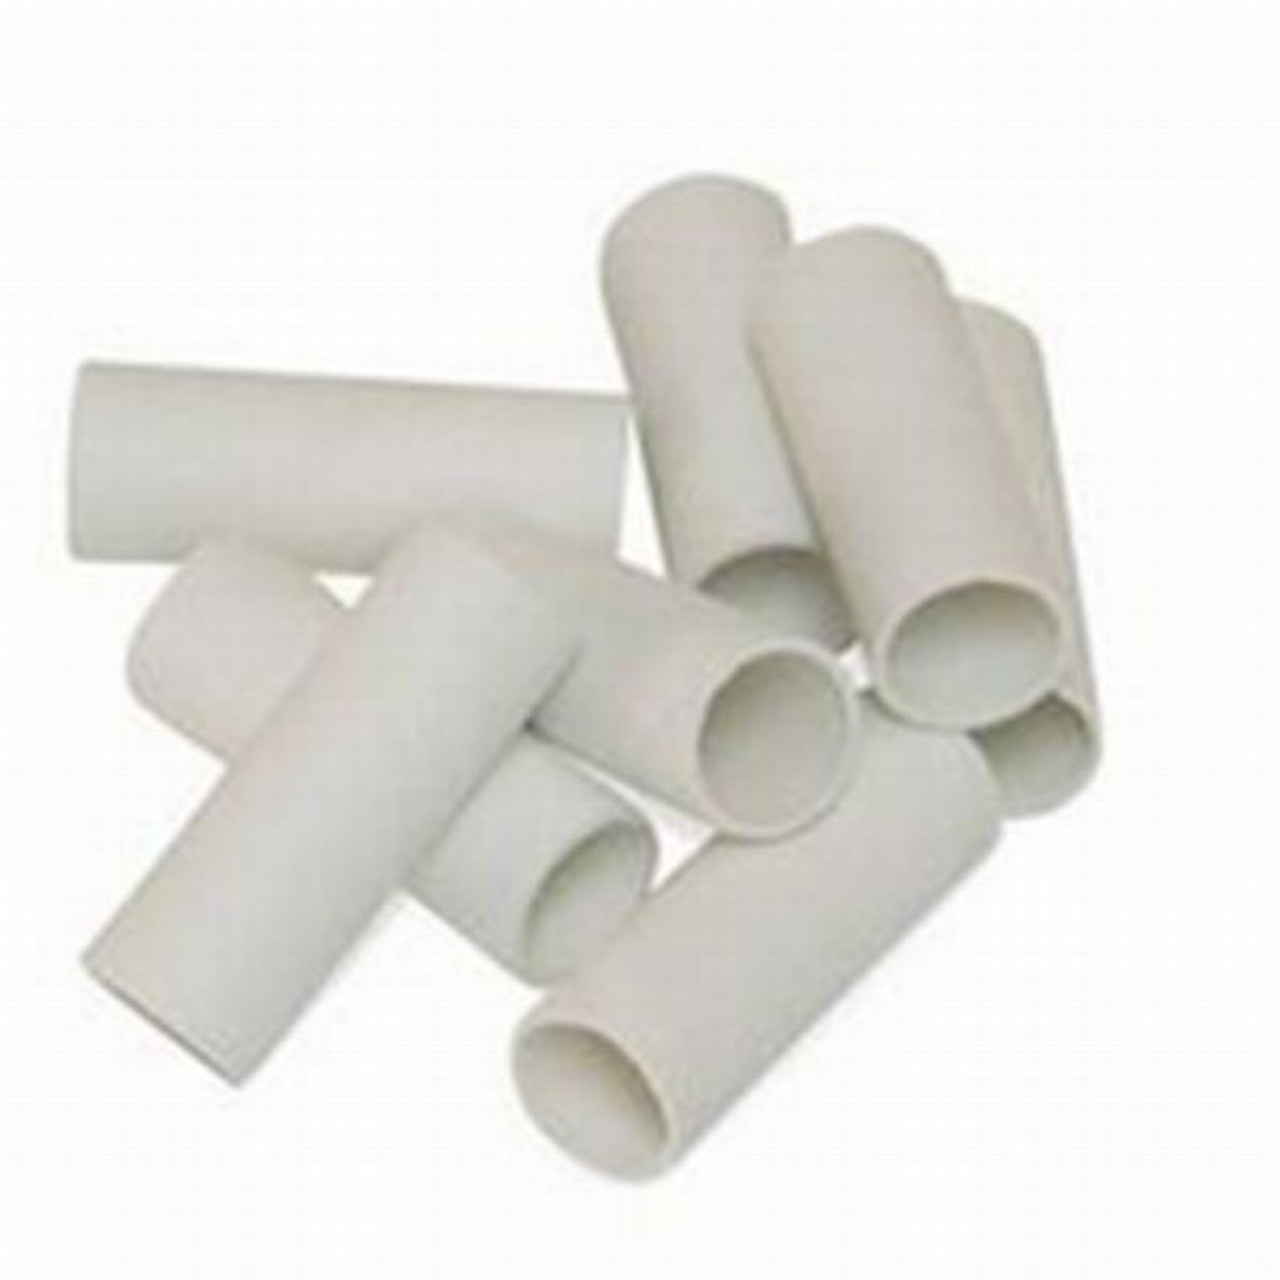 Paper plastified  Mouthpiece 30mm OD - Box of 100